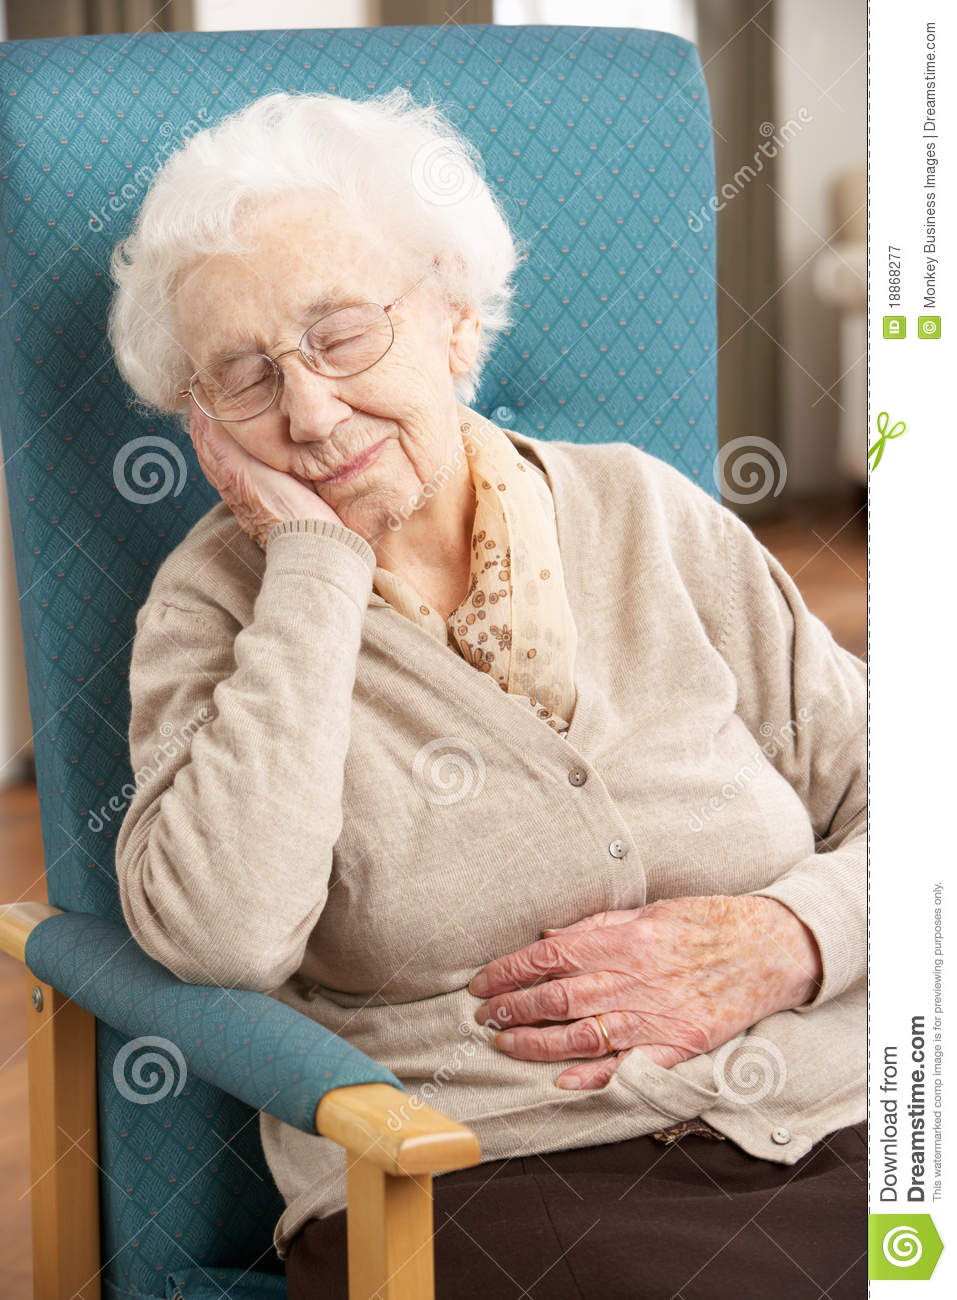 Senior Woman Resting In Chair Stock Image  Image of